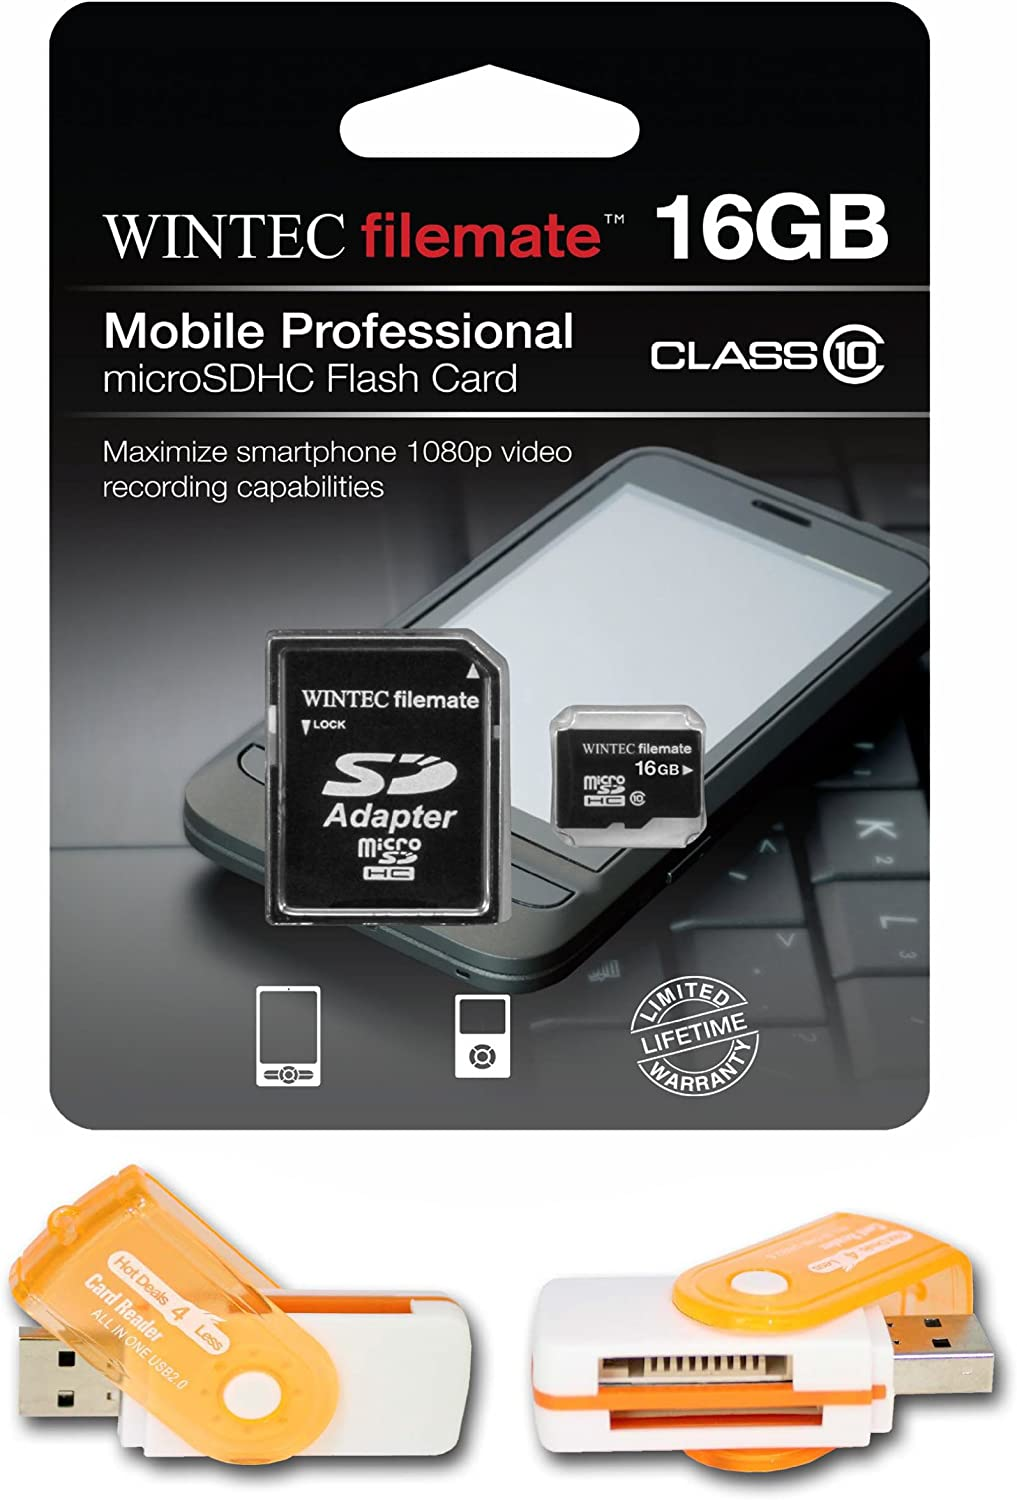 Comes with. 16GB Class 10 MicroSDHC Team High Speed 20MB//Sec Memory Card A free High Speed USB Adapter is included Blazing Fast Card For LG SPYDER LG830 VOYANGER VX10000 phone